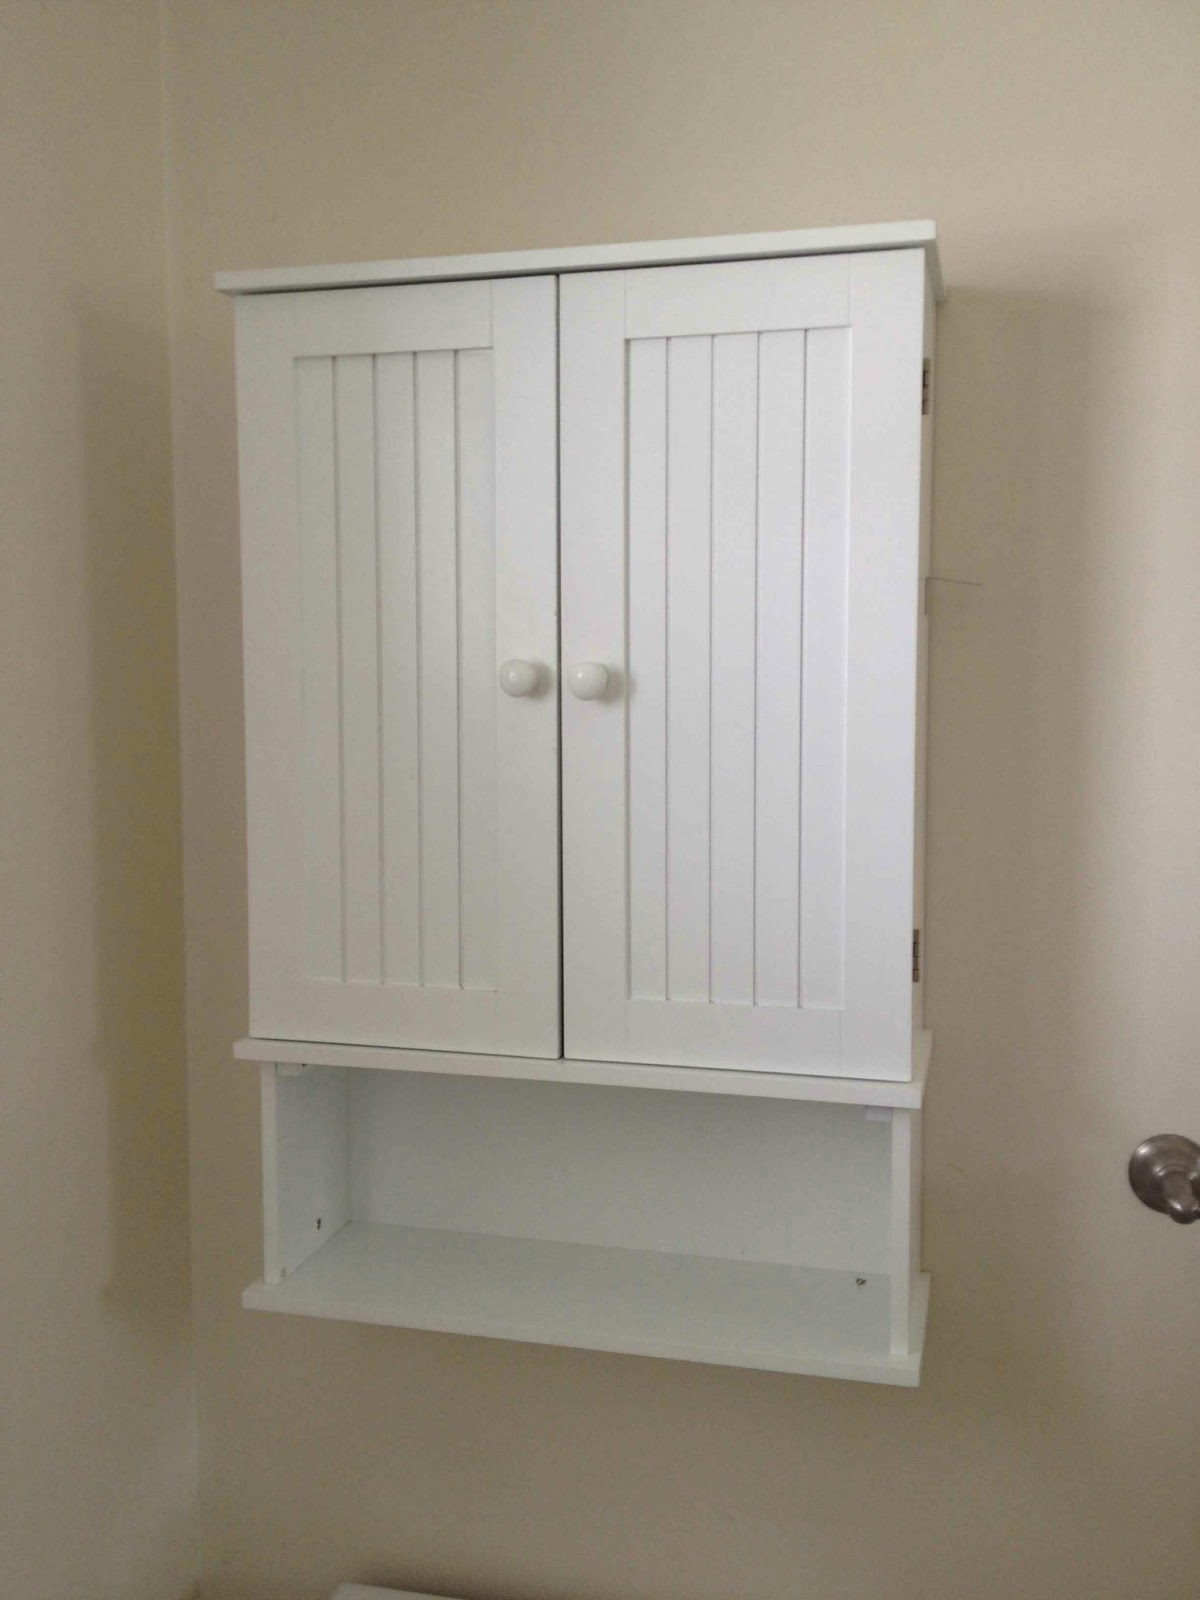 White Bathroom Wall Cabinet With Shelf